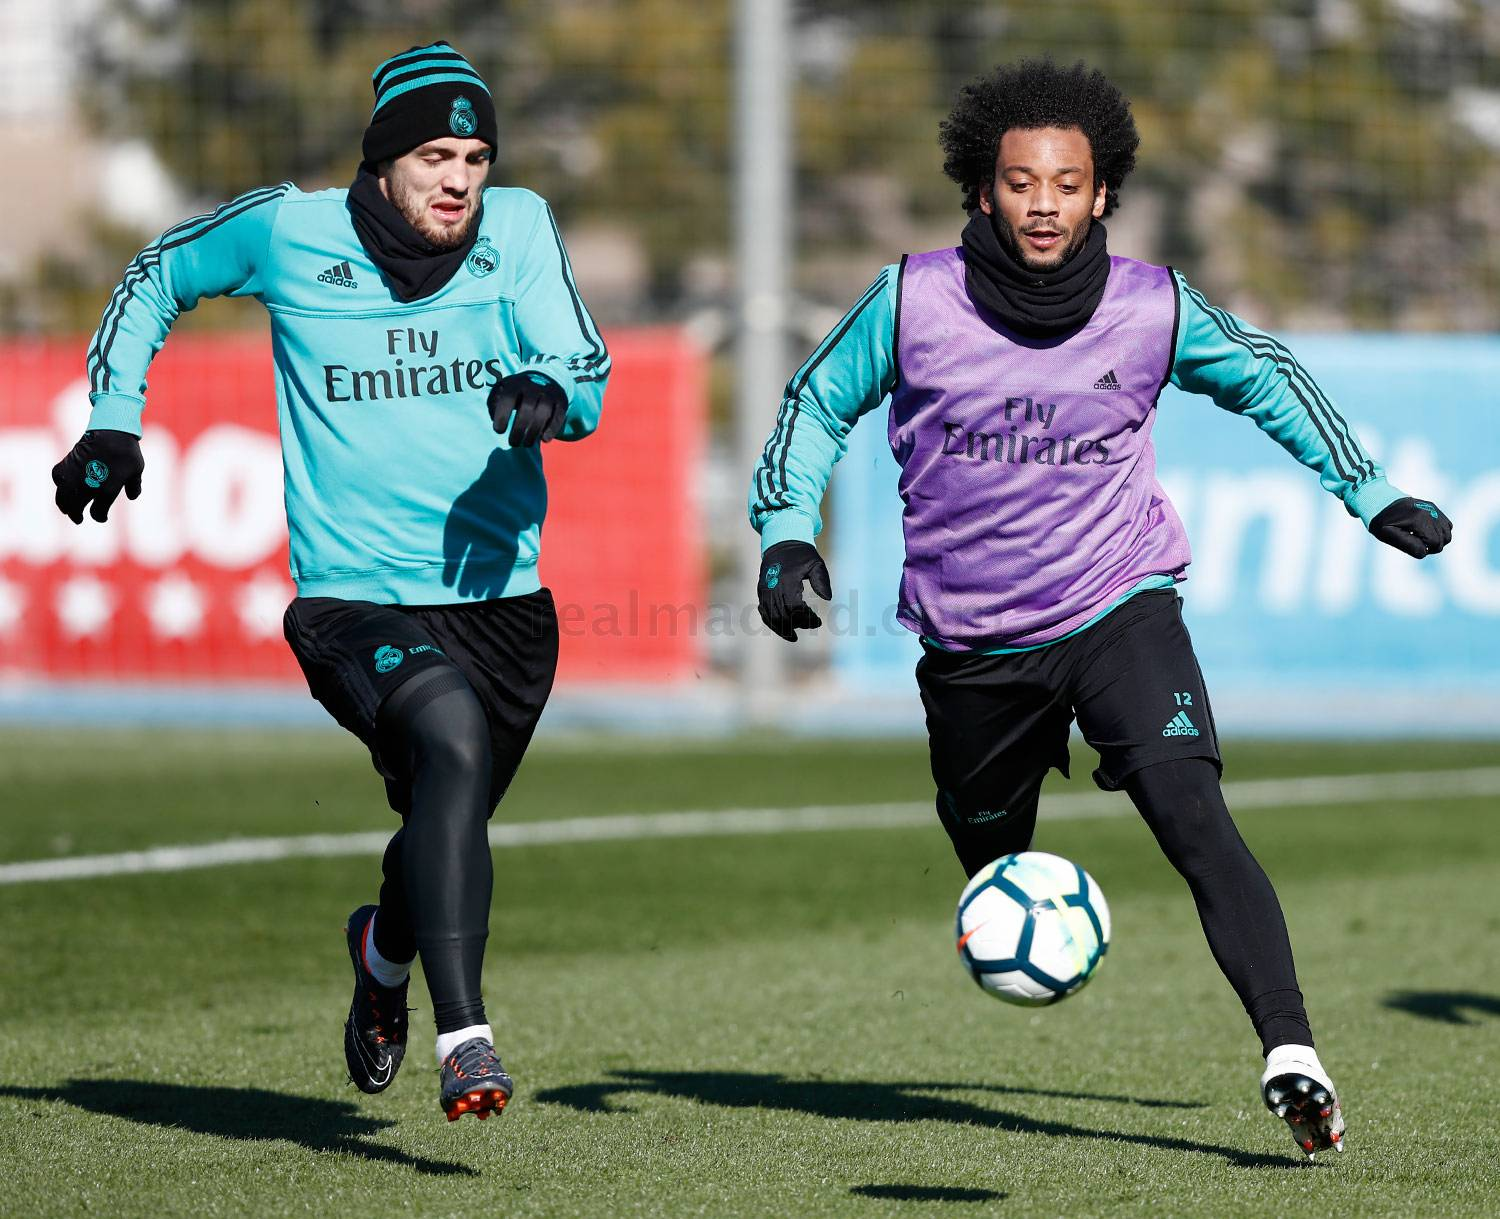 Real Madrid - Entrenamiento del Real Madrid - 07-02-2018